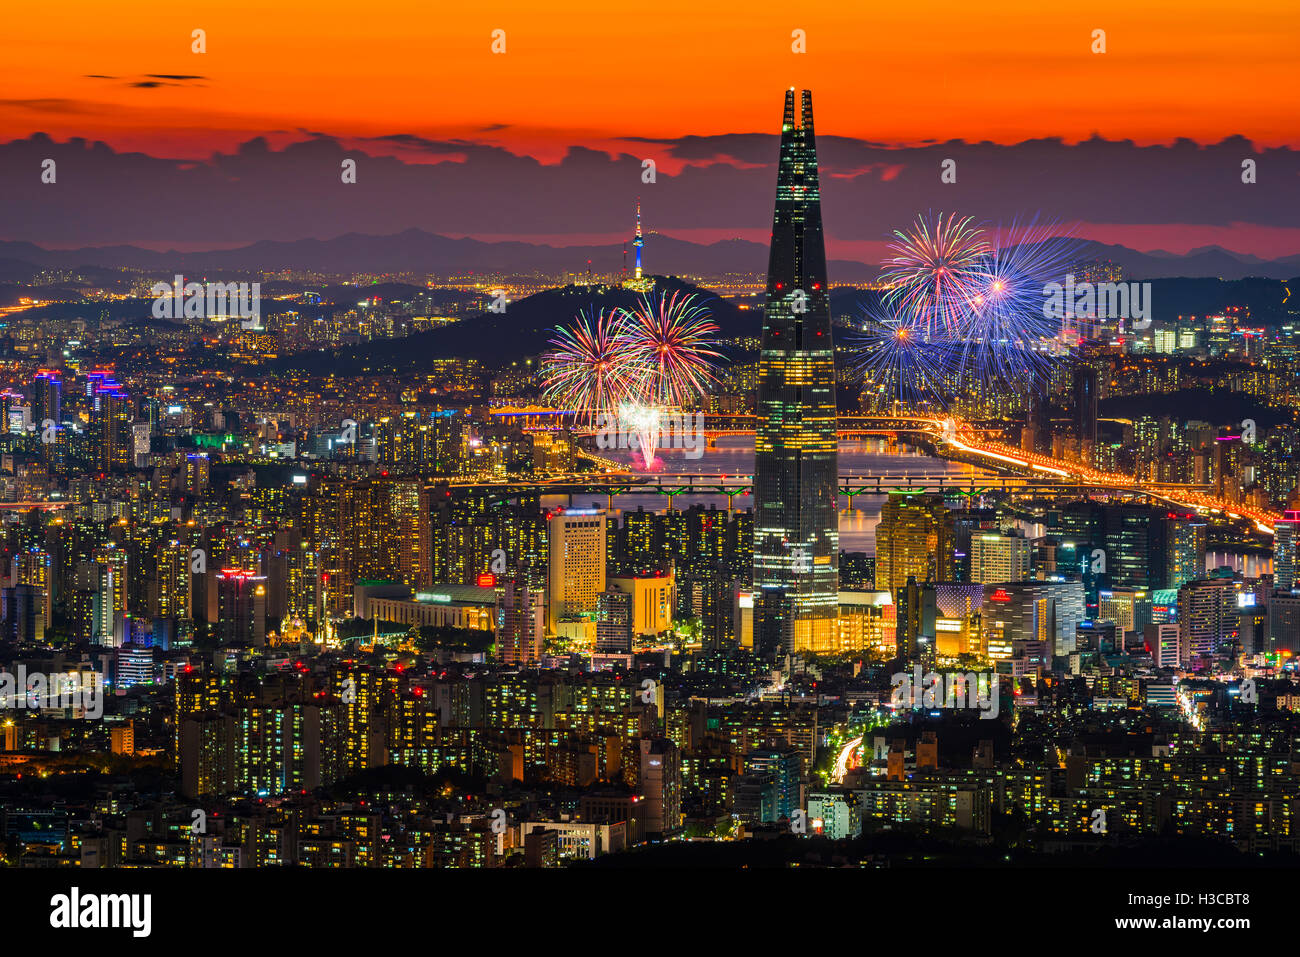 Seoul Fireworks In Seoul City Skyline,South Korea. - Stock Image